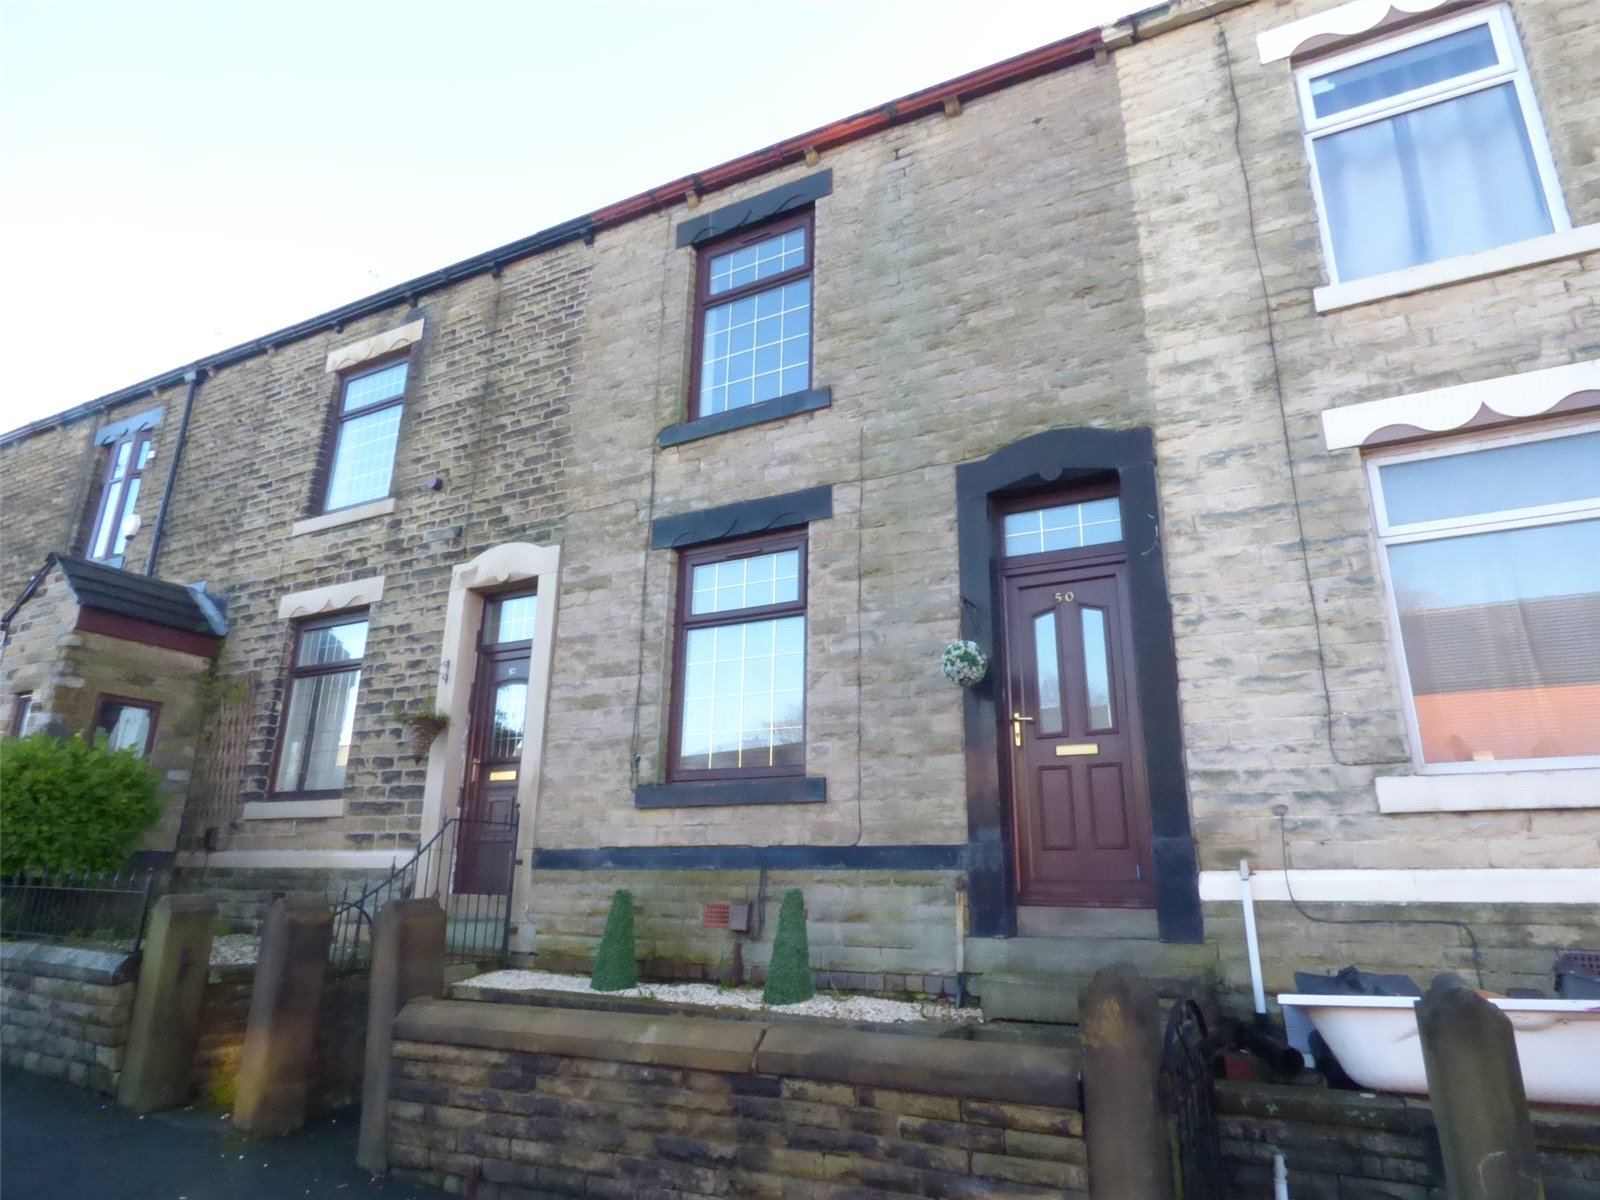 3 Bedrooms Terraced House for sale in Grains Road, Shaw, Oldham, Greater Manchester, OL2